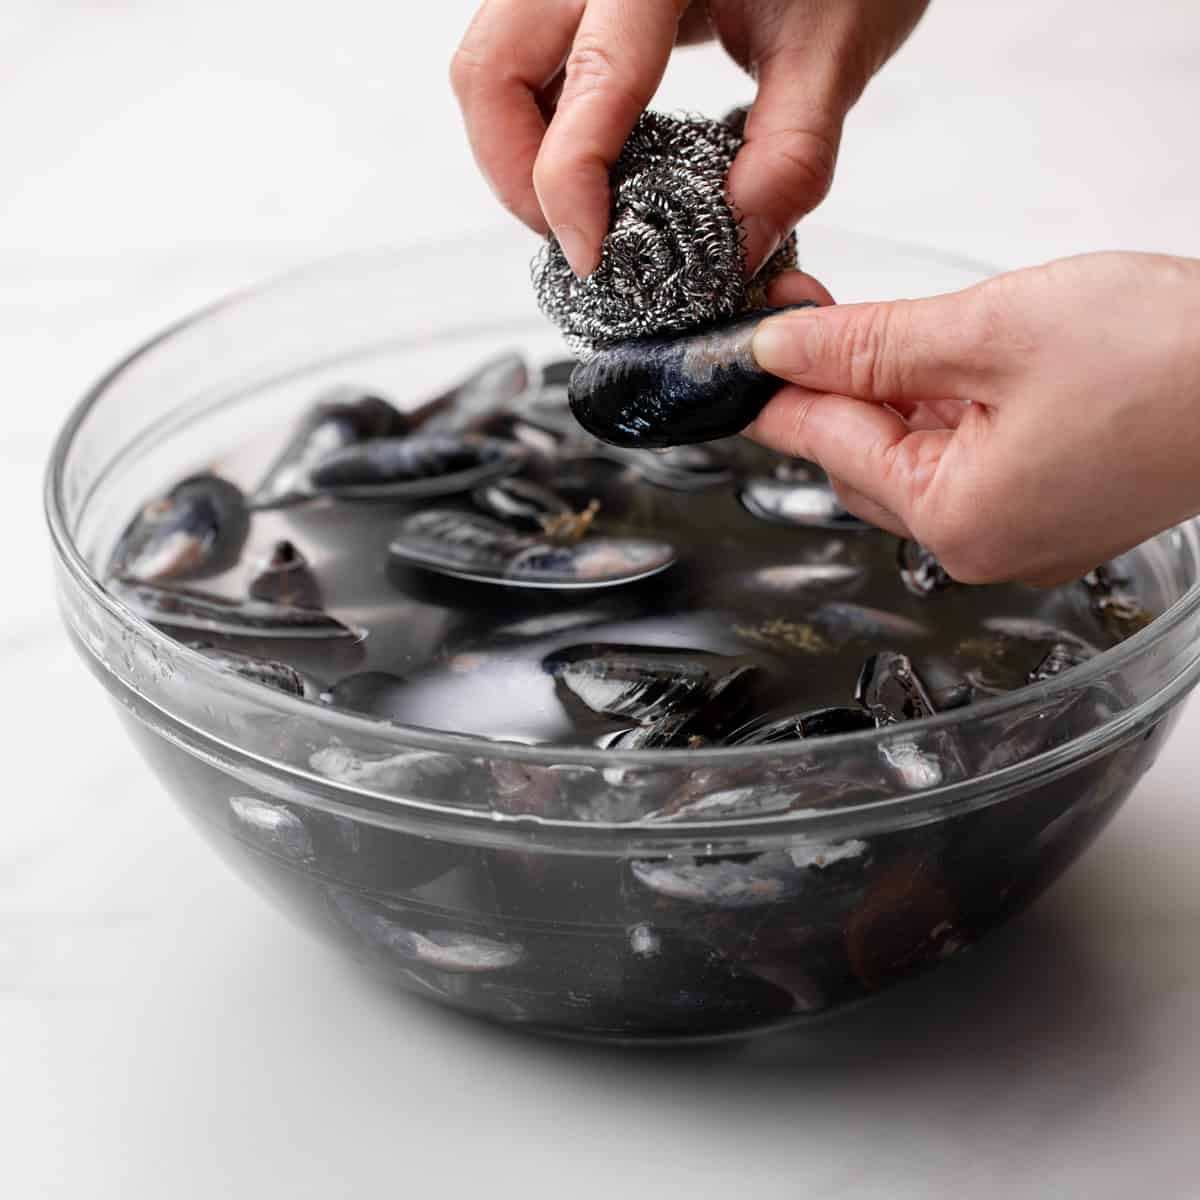 learn how to scrub mussels.